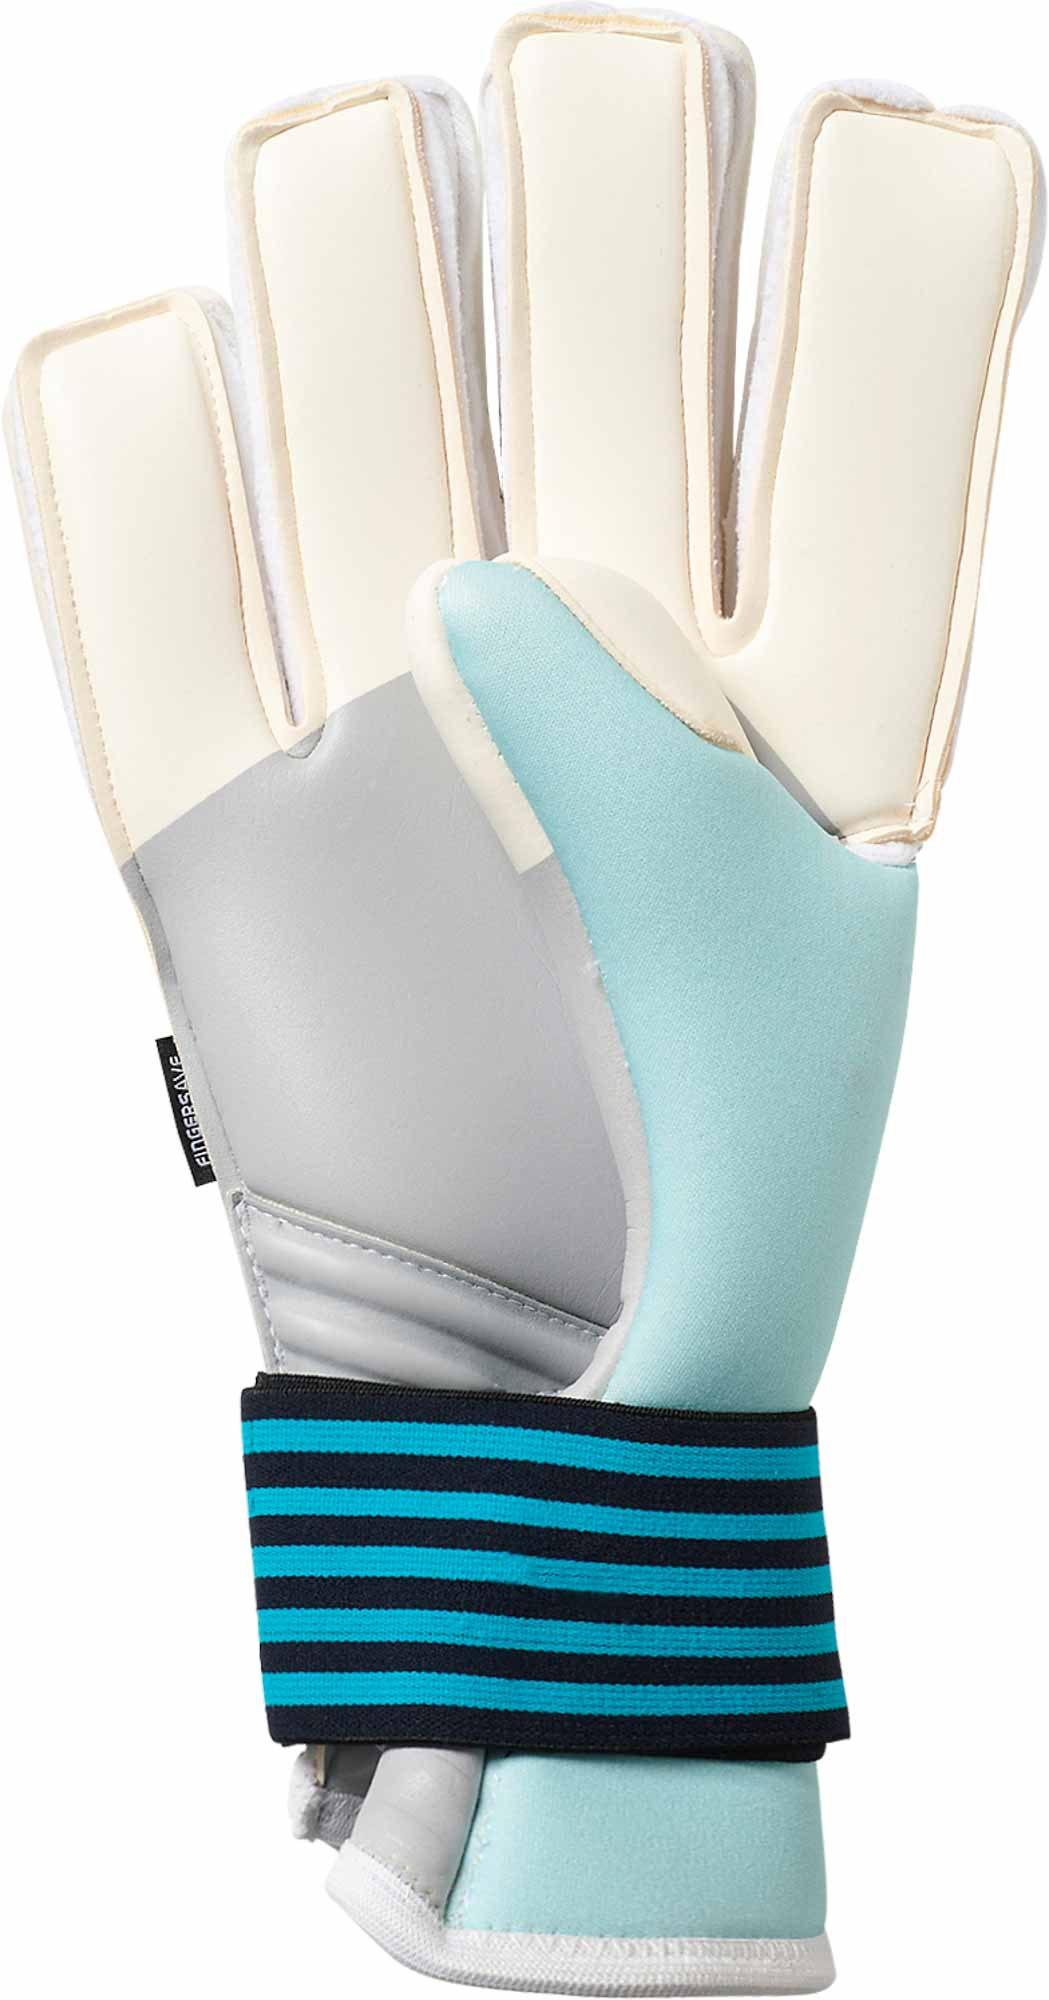 adidas ACE Trans Fingersave Pro - Blue Goalkeeper Gloves